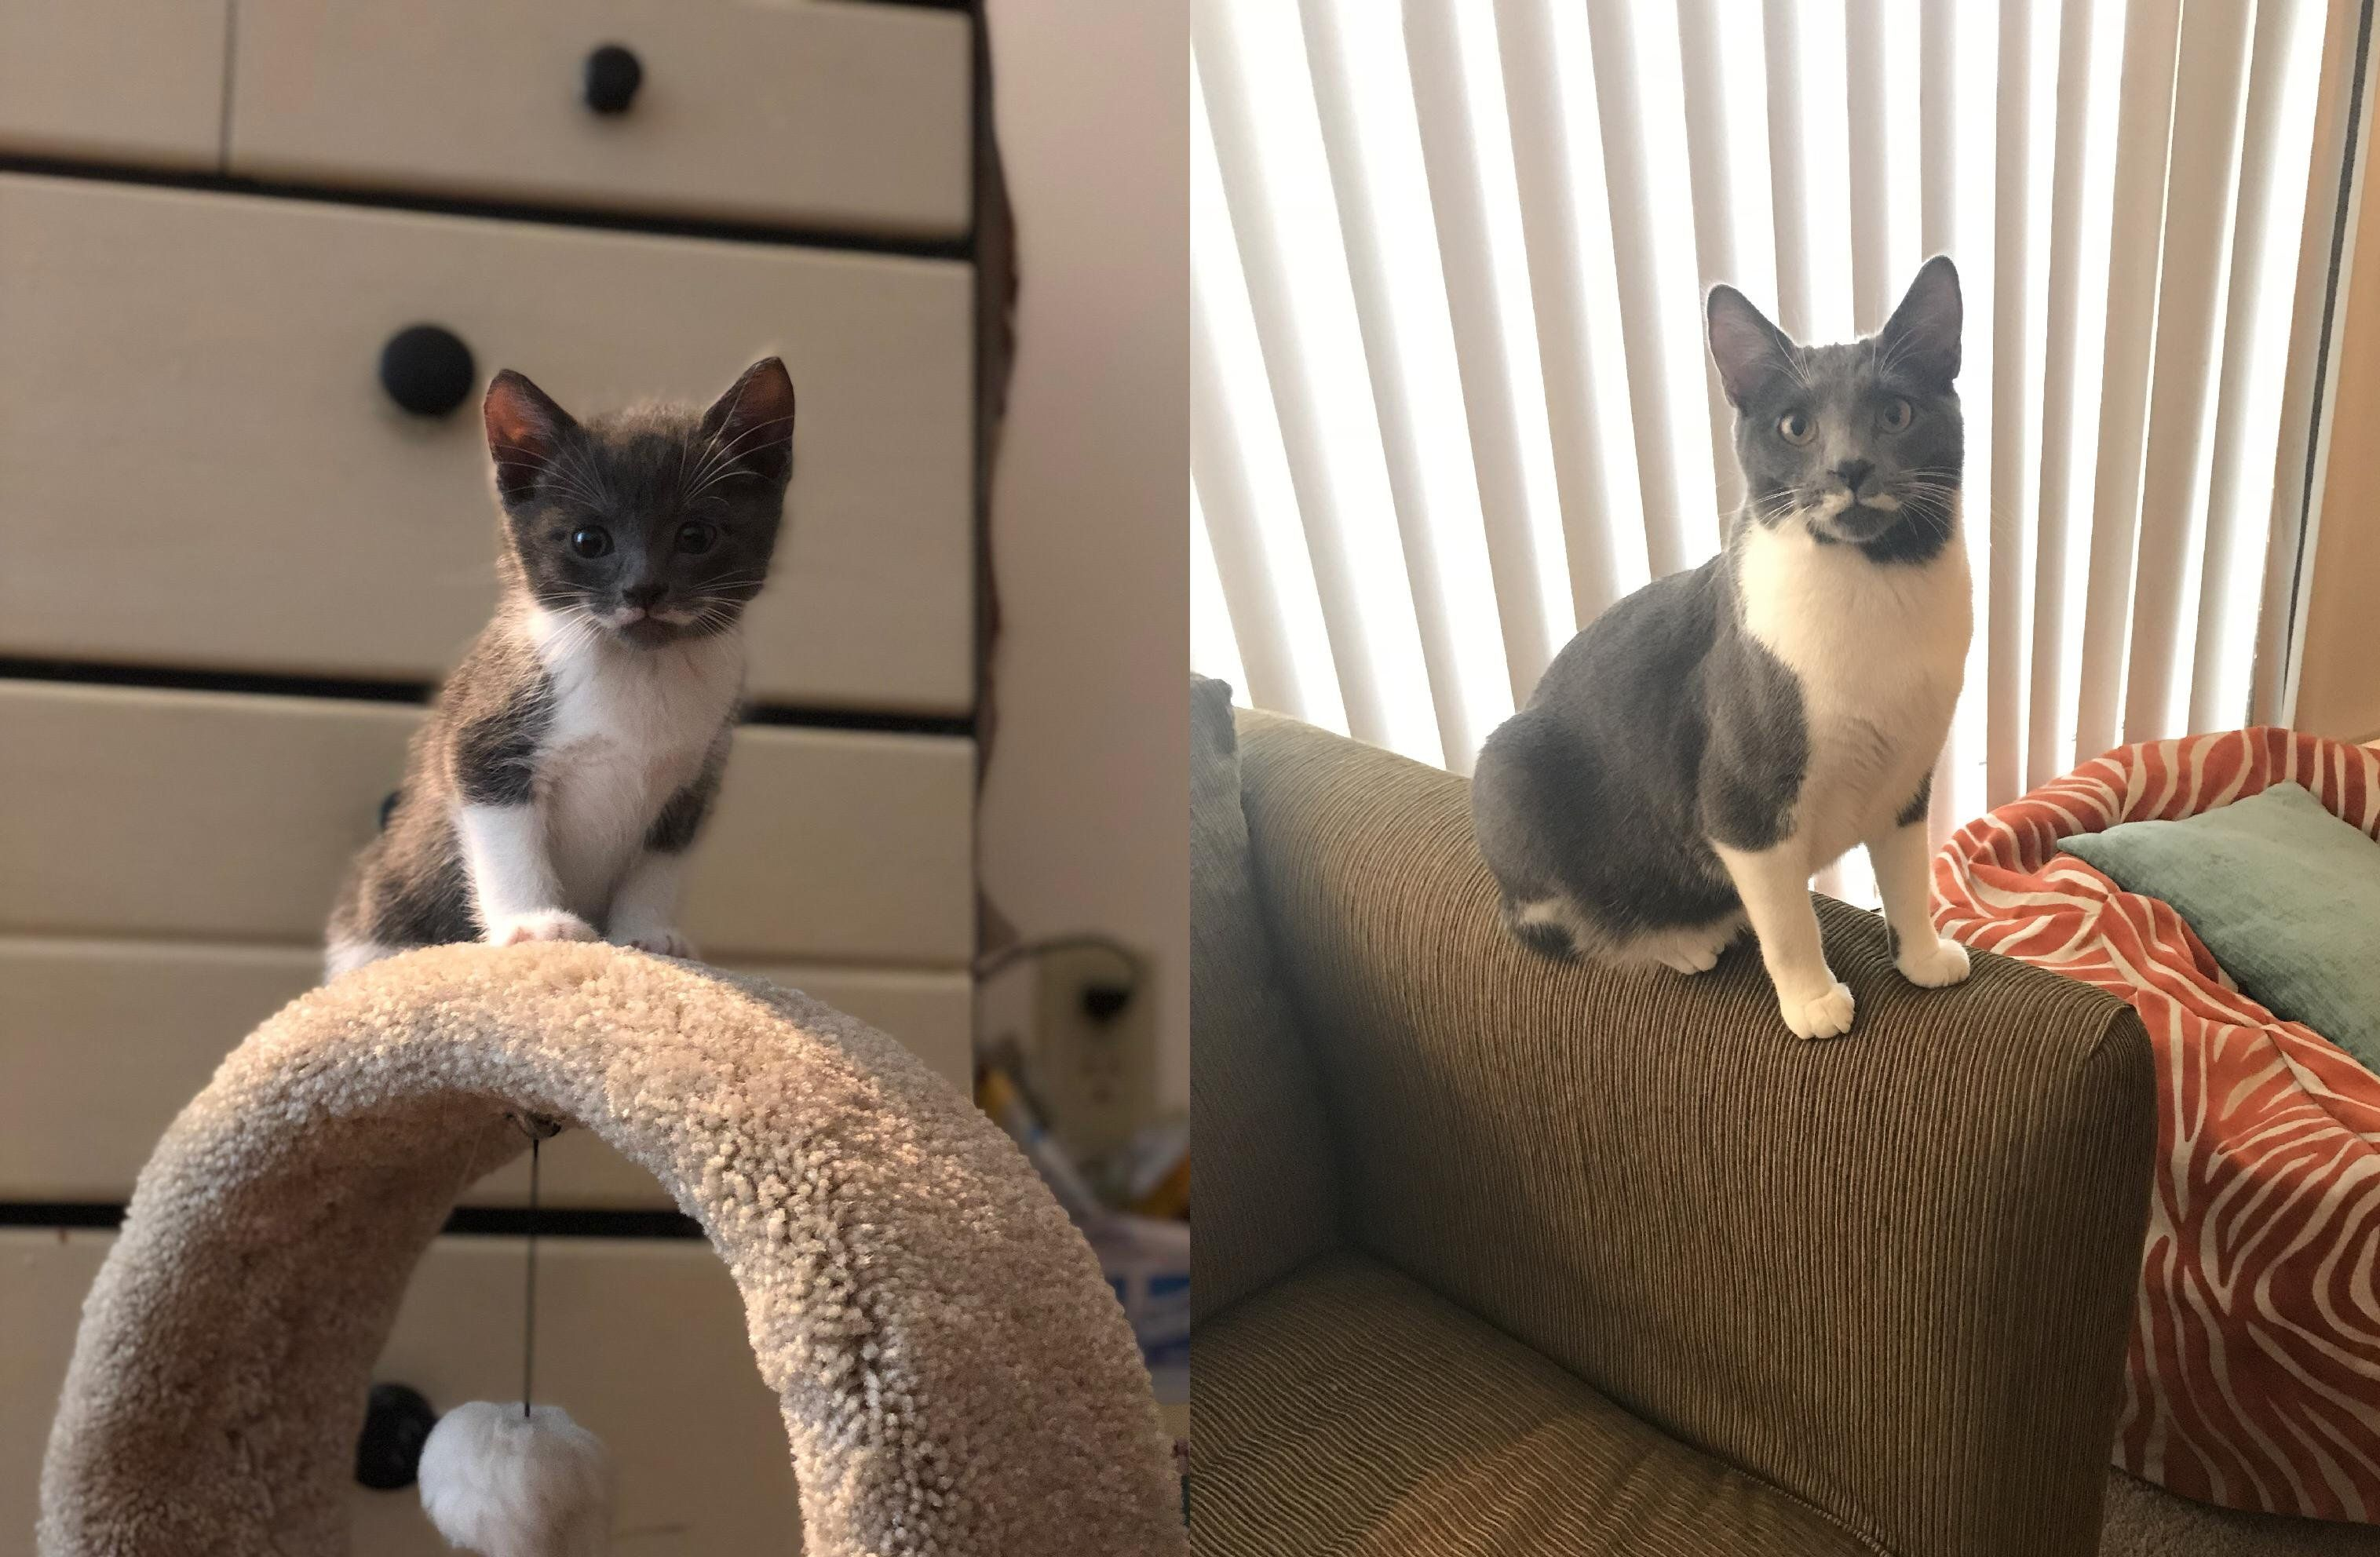 It S Winston S First Birthday Today Here He Is At 6 Weeks Old Vs 1 Year Old Http Bit Ly 2wttjv Cute Cats And Kittens Kitten Pictures Funny Cats And Dogs